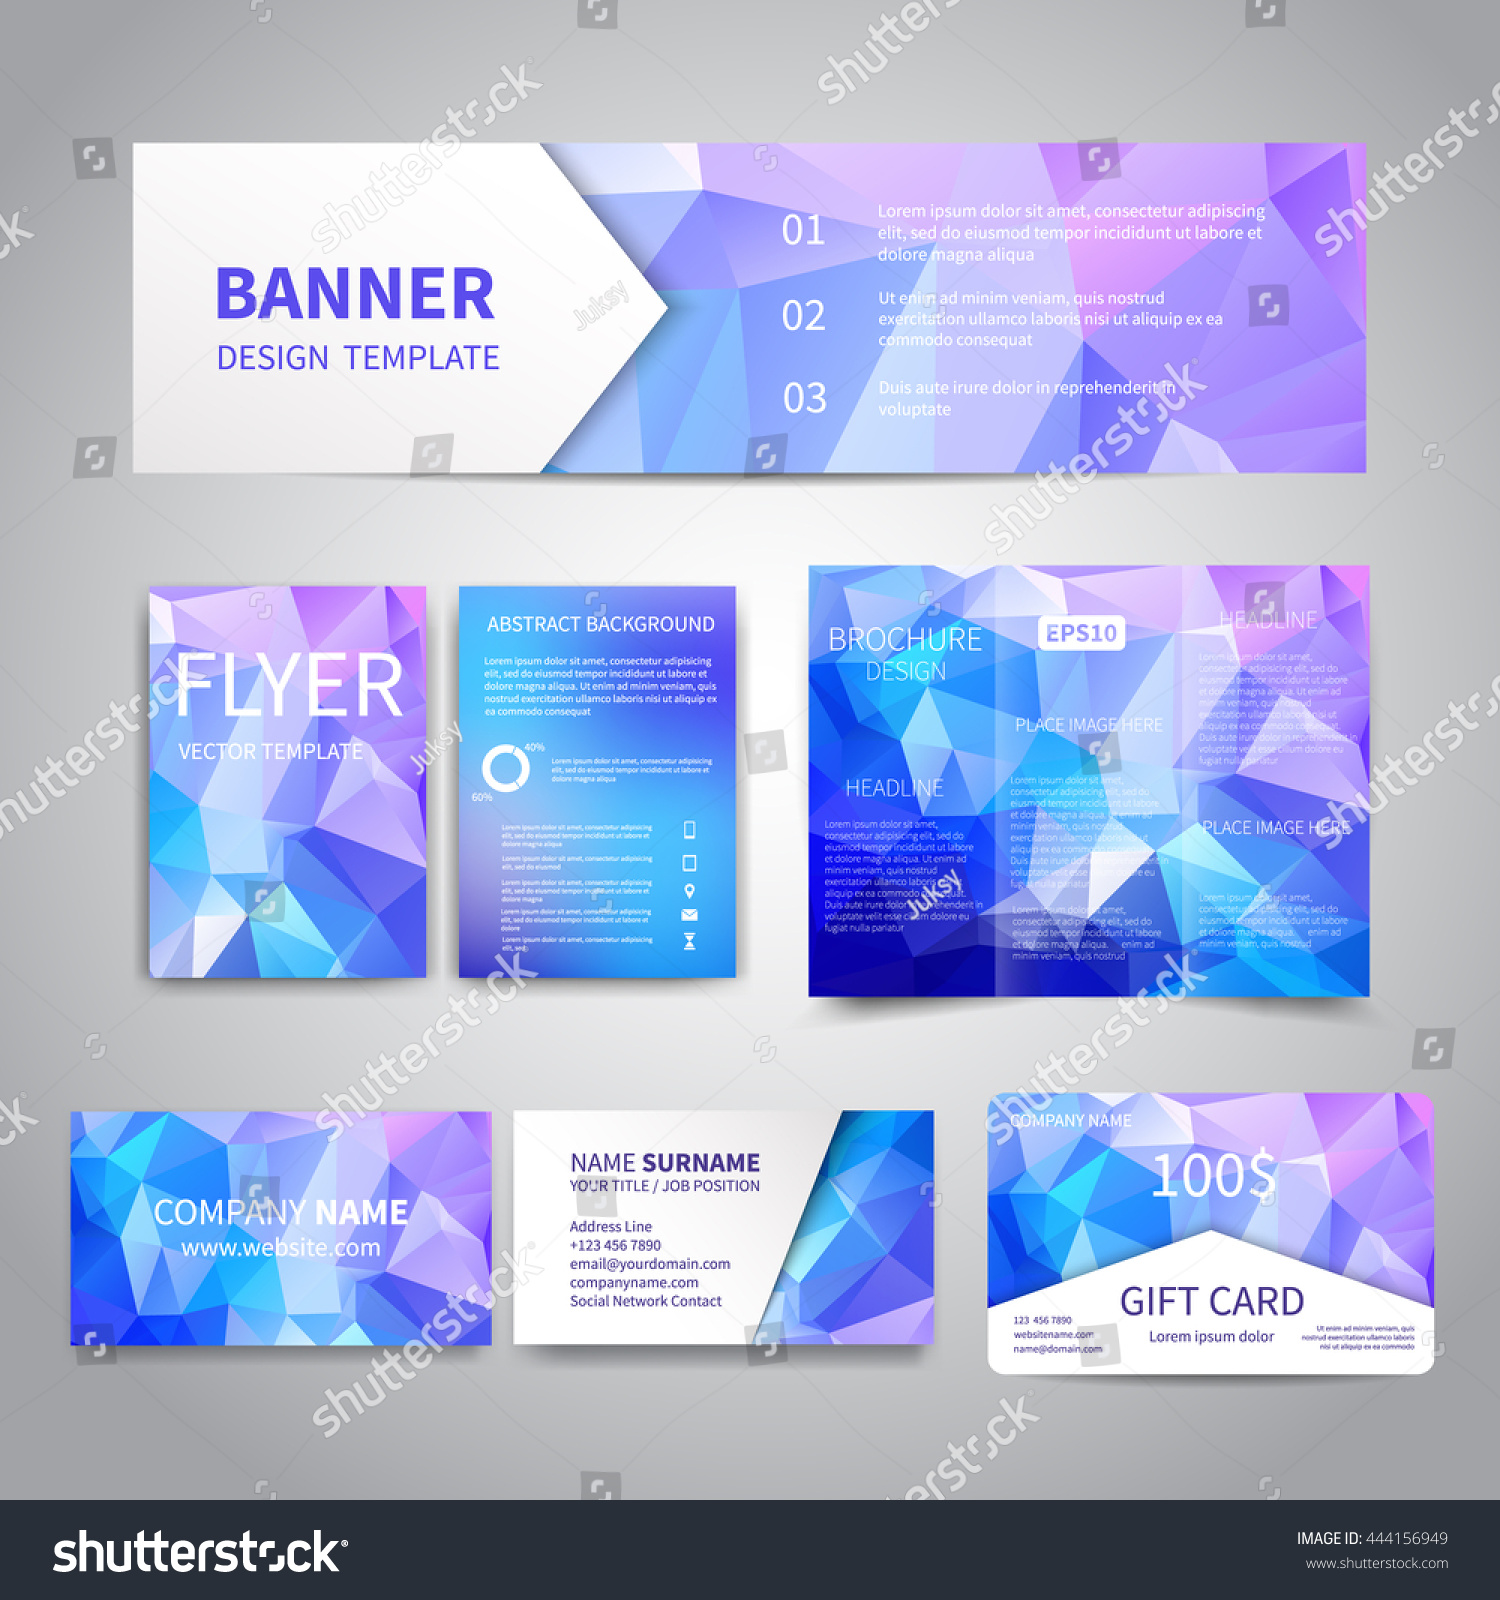 banner flyers brochure business cards gift stock vector  banner flyers brochure business cards gift card design templates set geometric